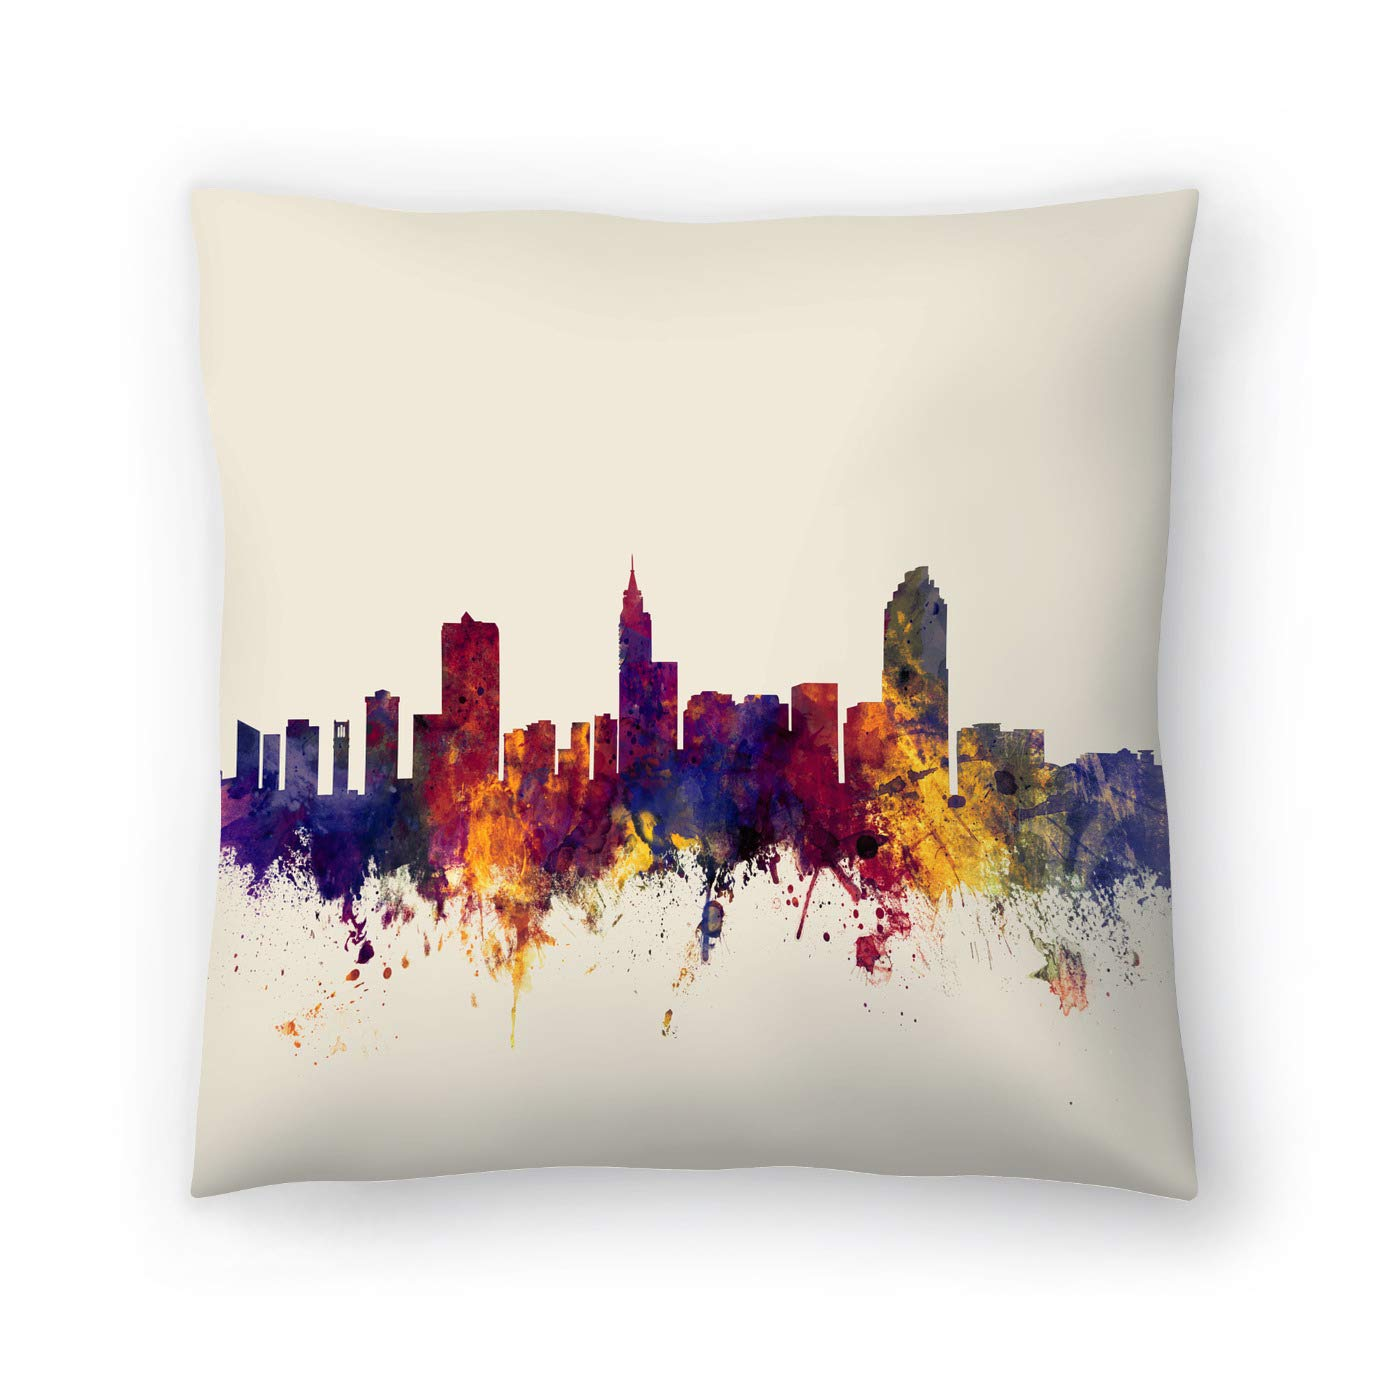 Buy American Flat Raleigh North Carolina Skyline New 3 Art Pause Pillow By Michael Tompsett 18 X 18 Online At Low Prices In India Amazon In